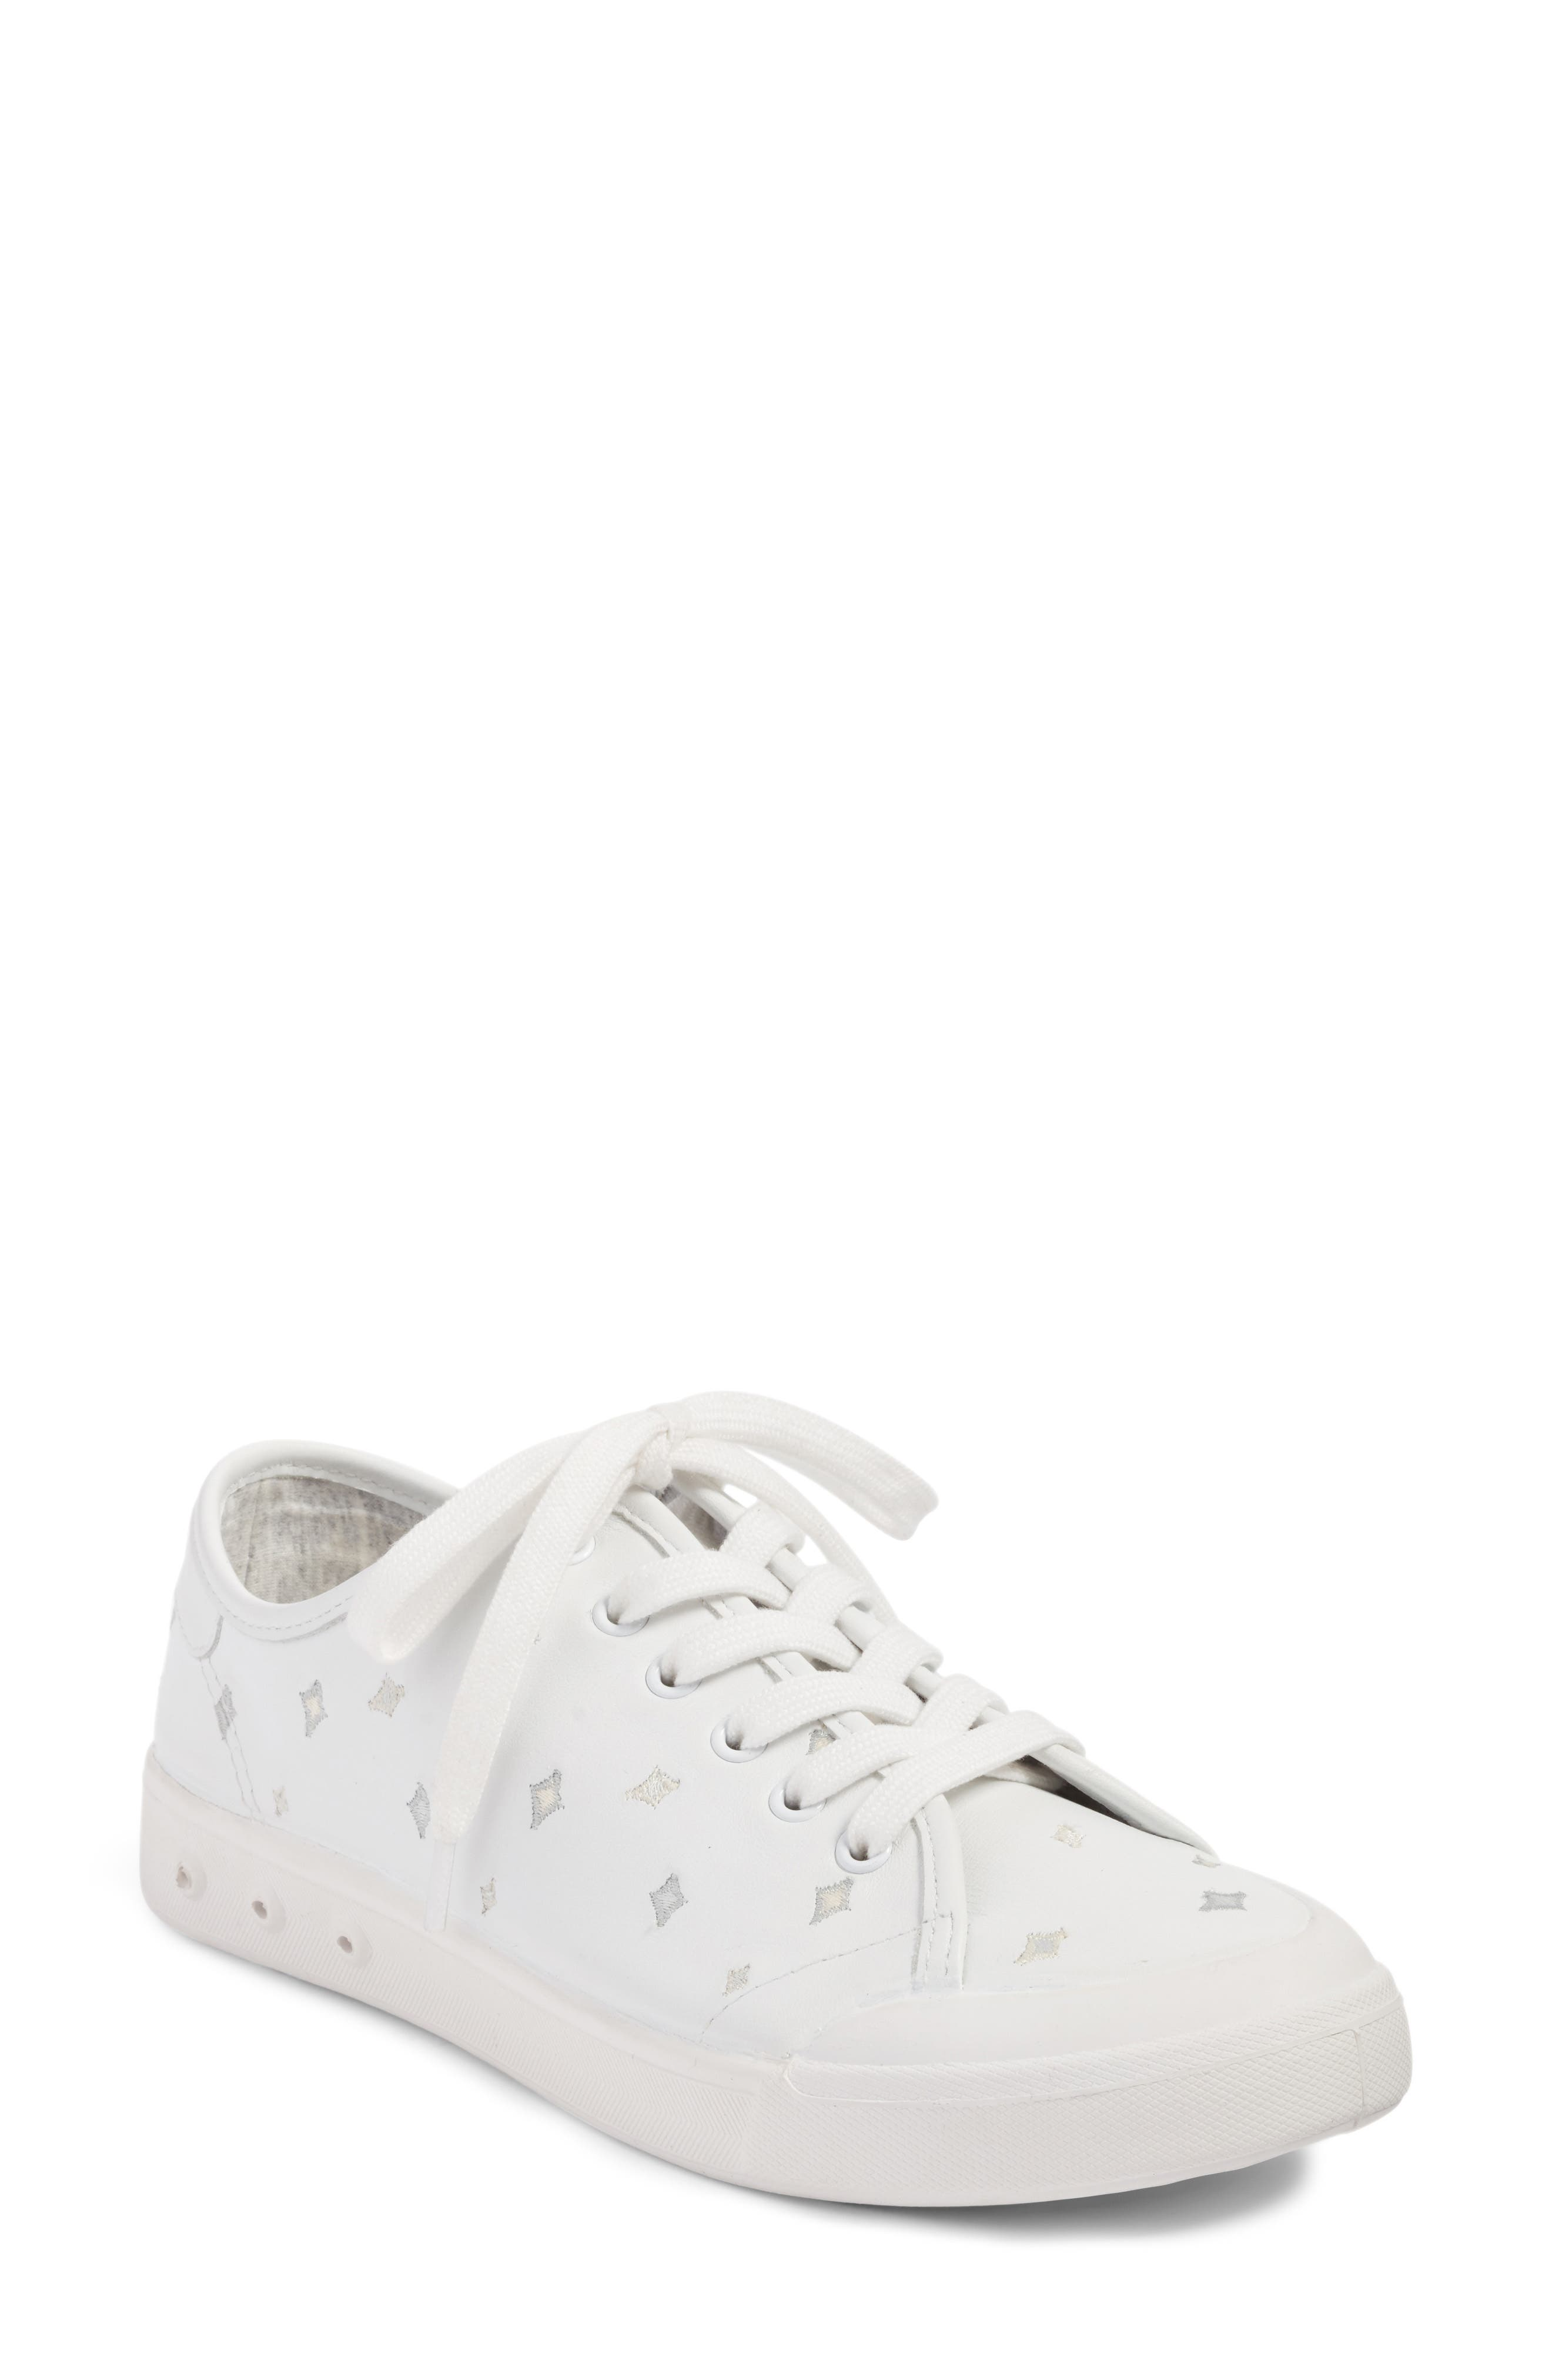 Embroidered Standard Issue Sneaker,                             Main thumbnail 1, color,                             129